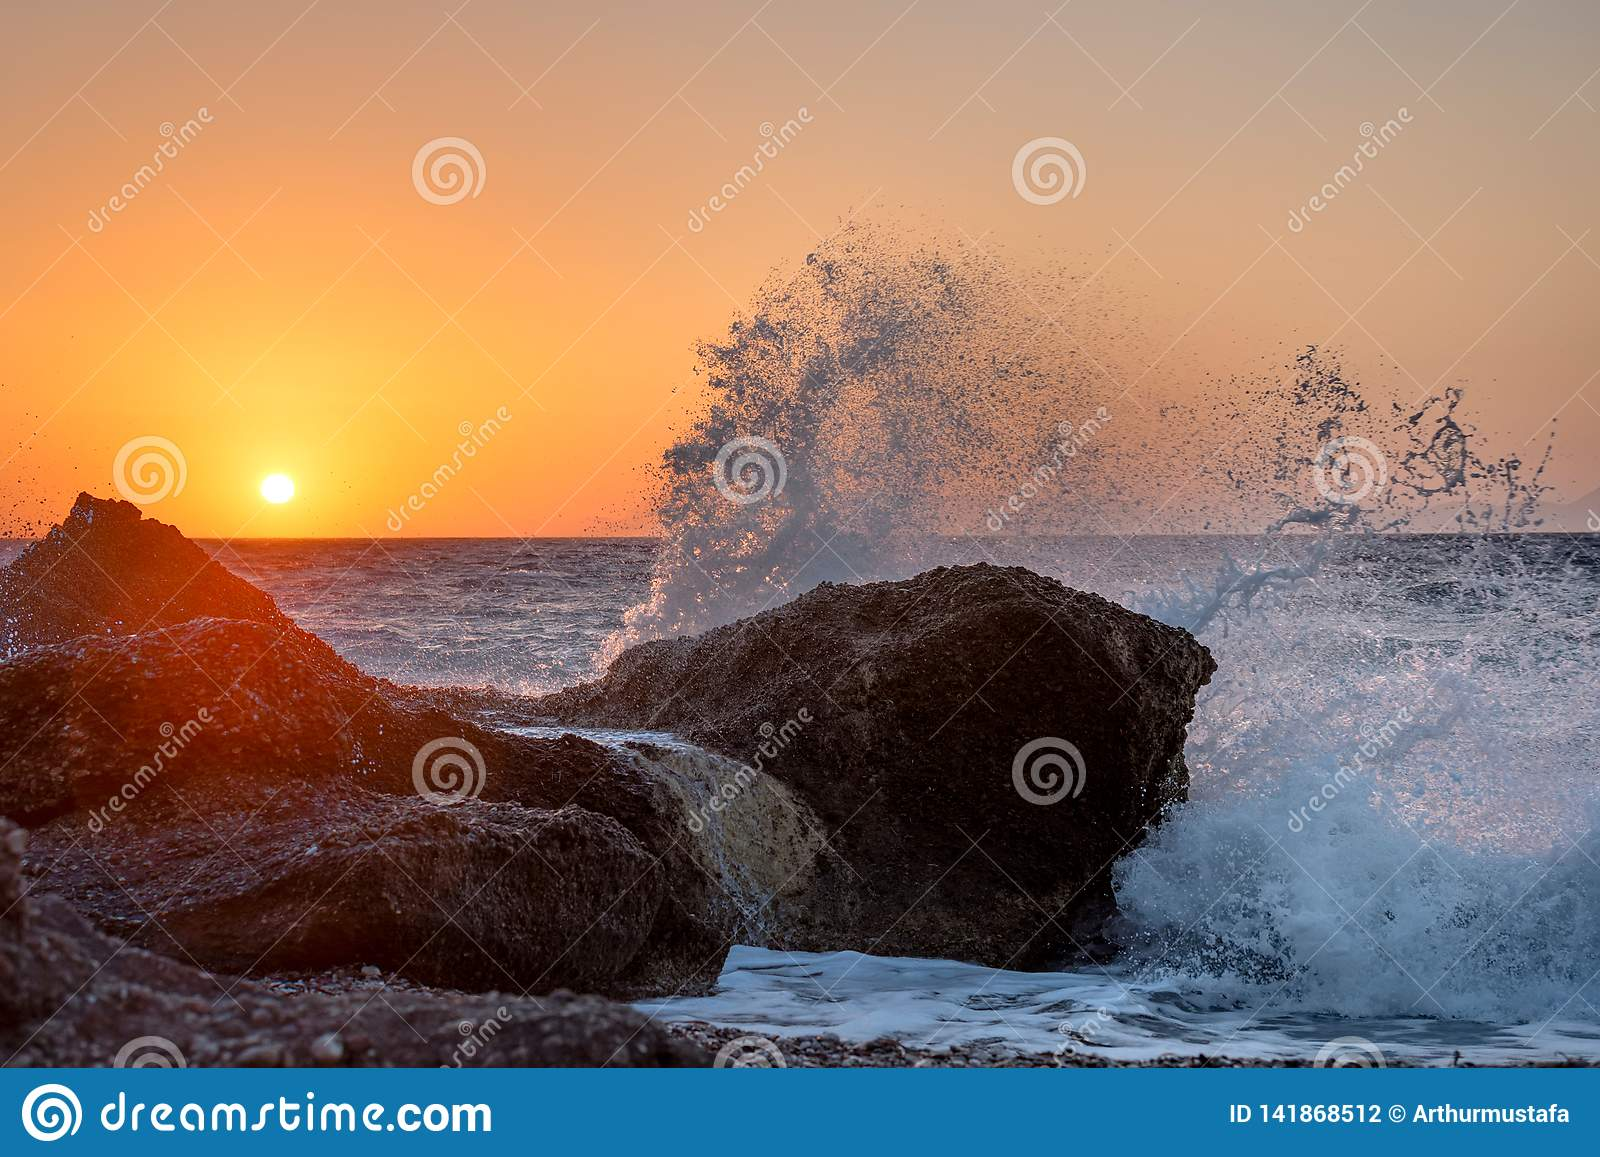 Sea waves crushing and splashing on the rocks on a tropical beach, in beautiful warm sunset light